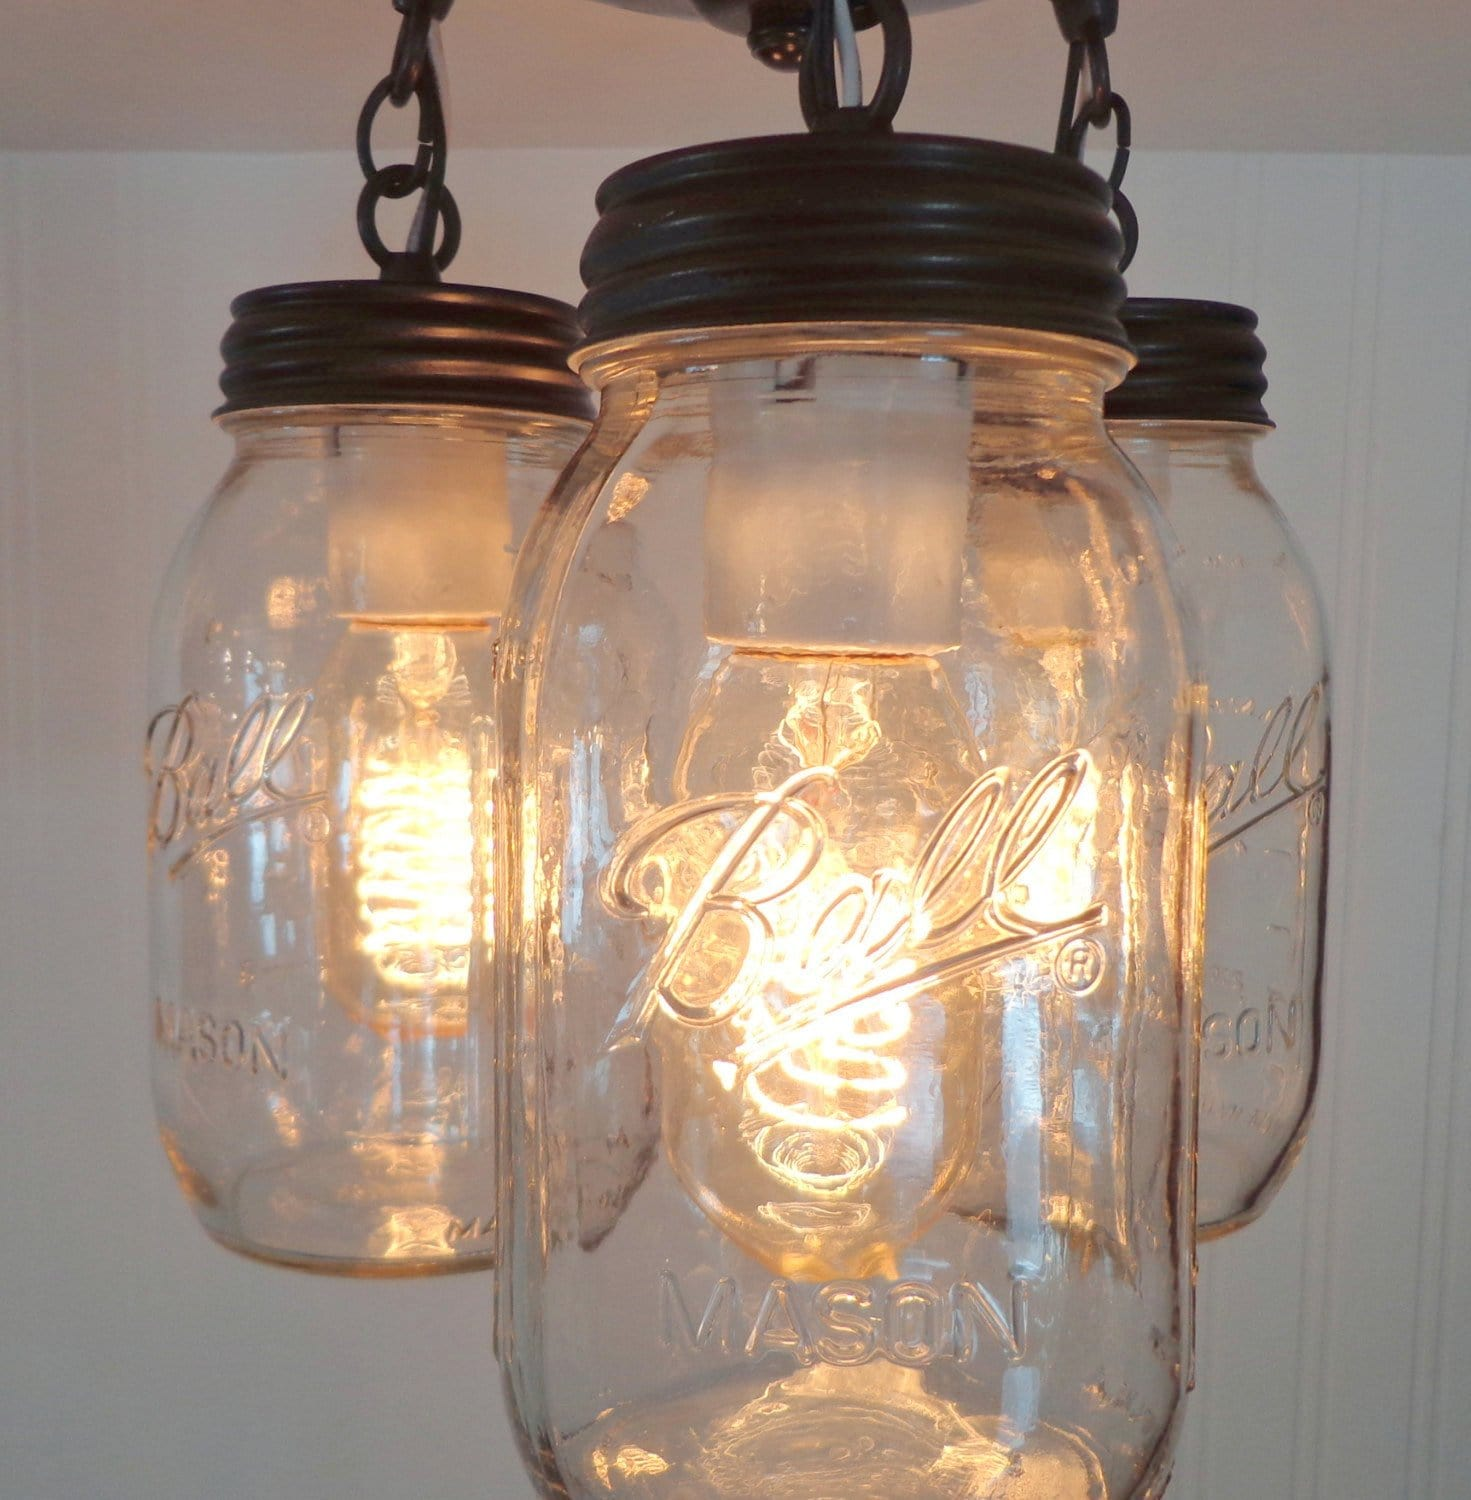 Edison style light bulb for mason jar lighting 40 watts the edison style light bulb for mason jar lighting 40 watts the lamp arubaitofo Gallery